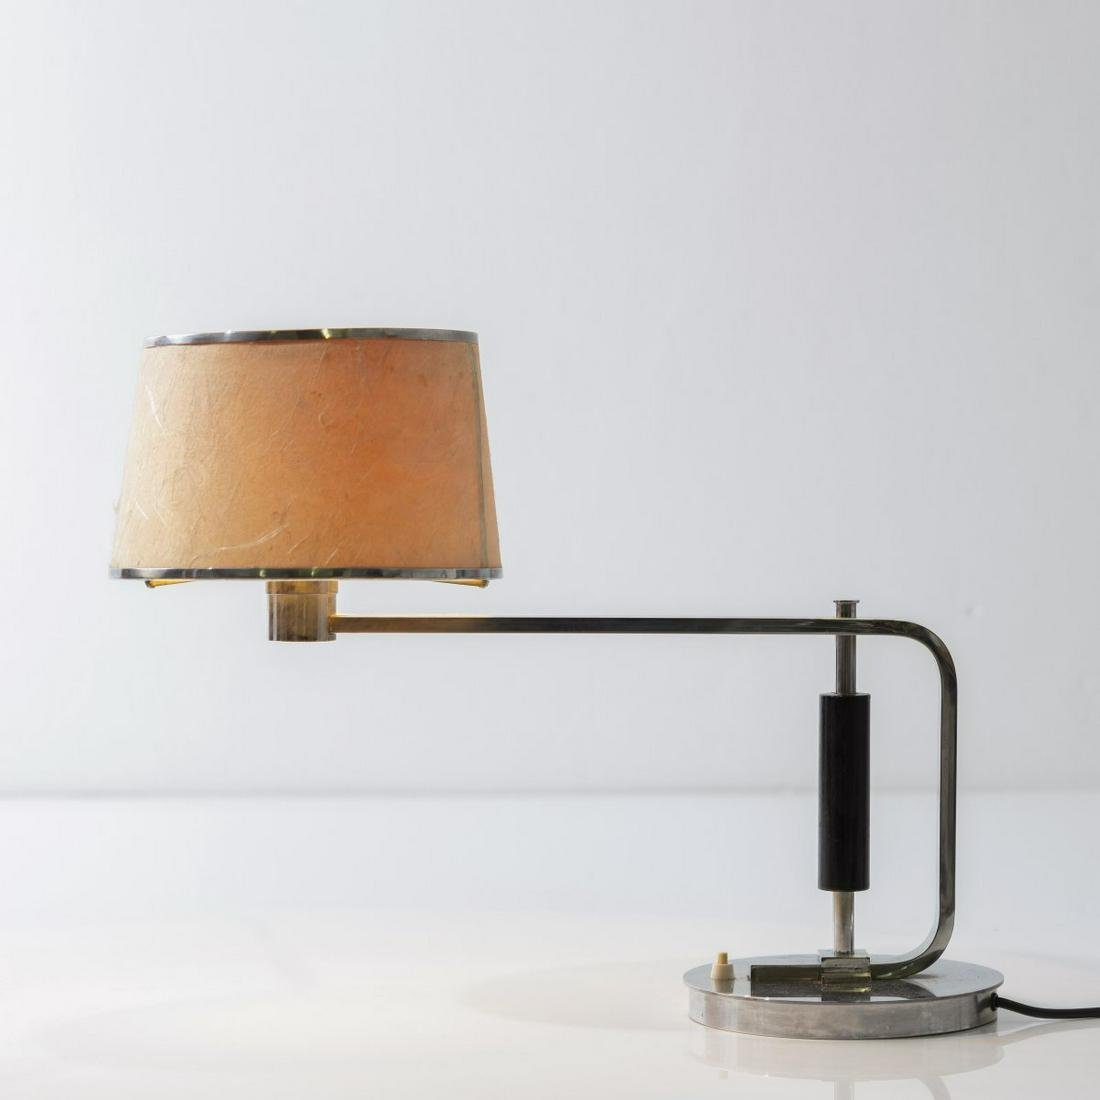 Germany, Table light, 1930s